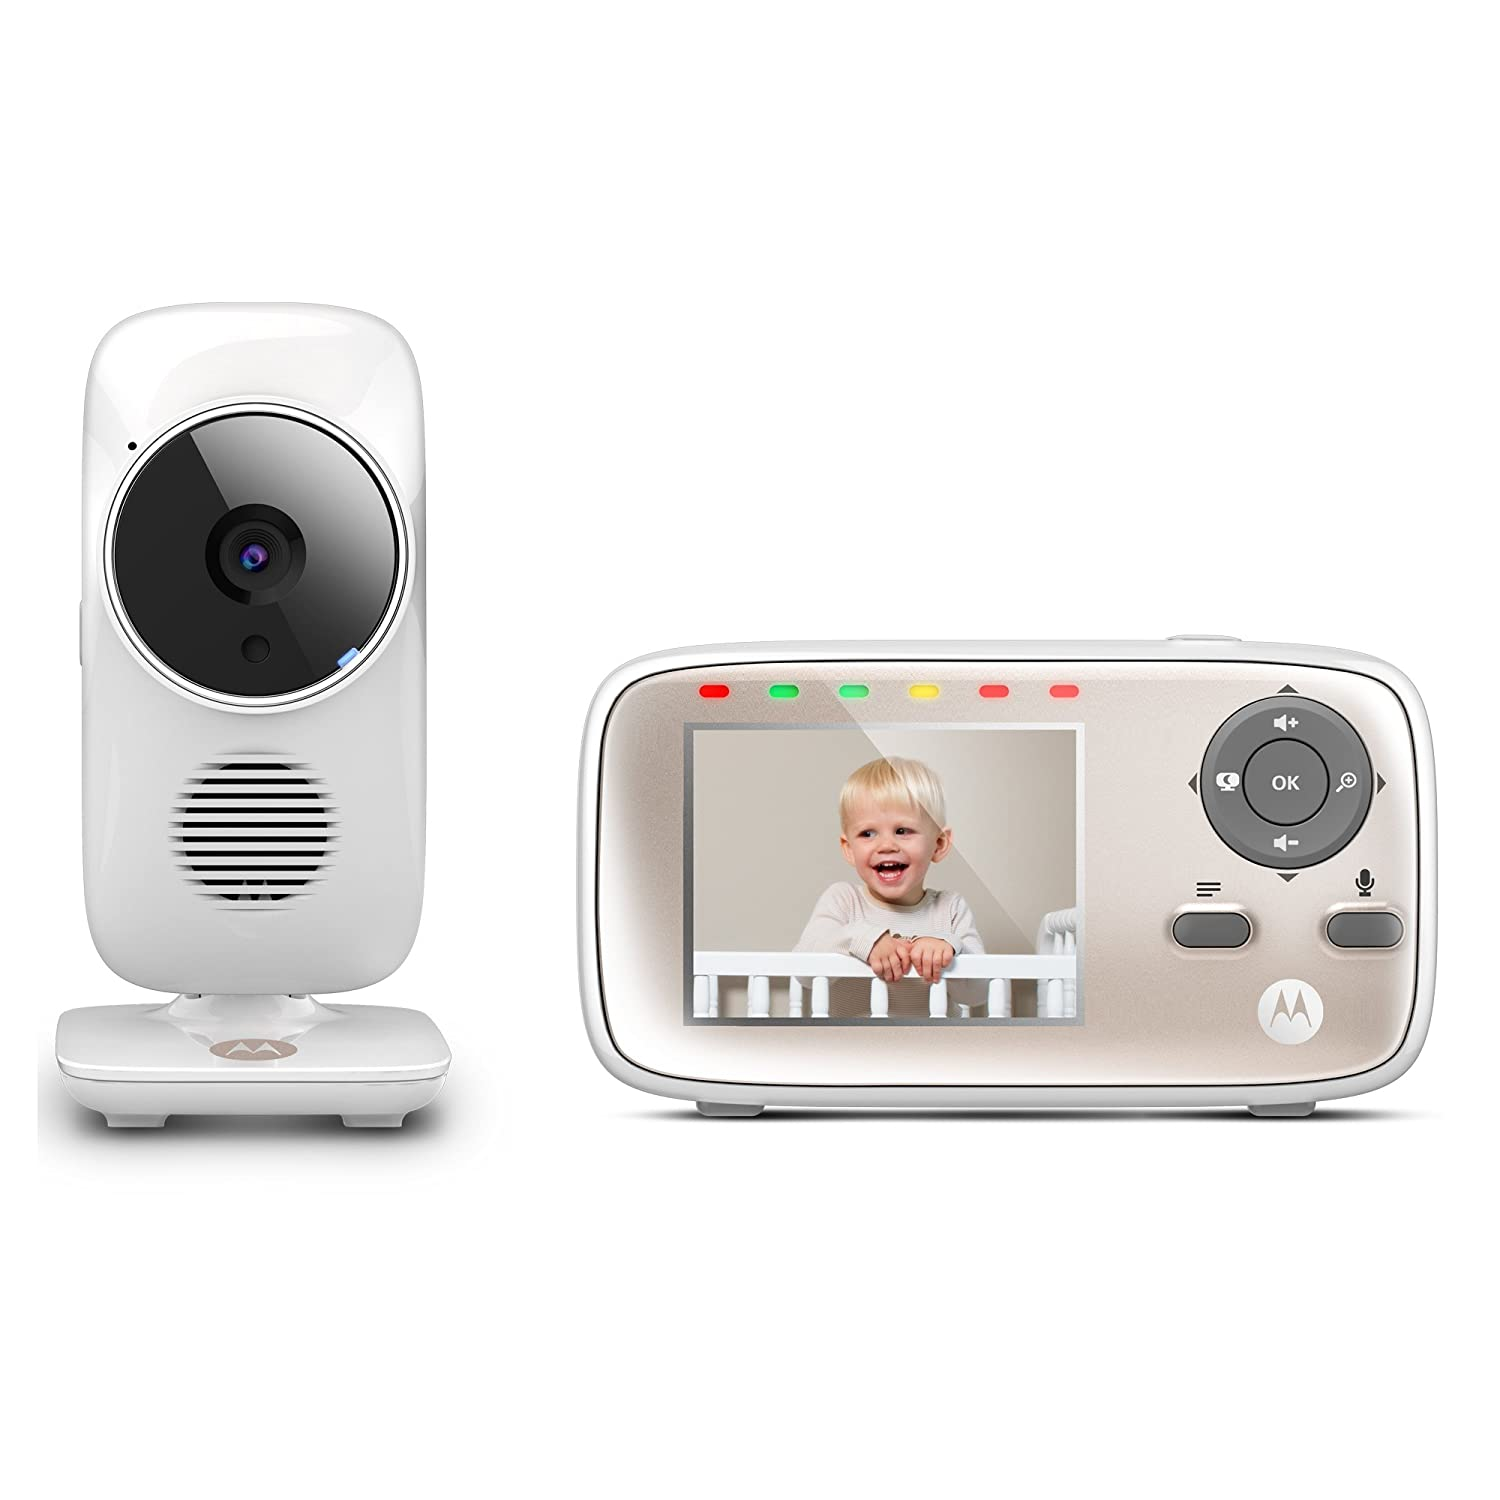 Motorola MBP667CONNECT 2.8-inch Video Baby Monitor with Wi-Fi Viewing, Digital Zoom, Two-Way Audio, and Room Temperature Display